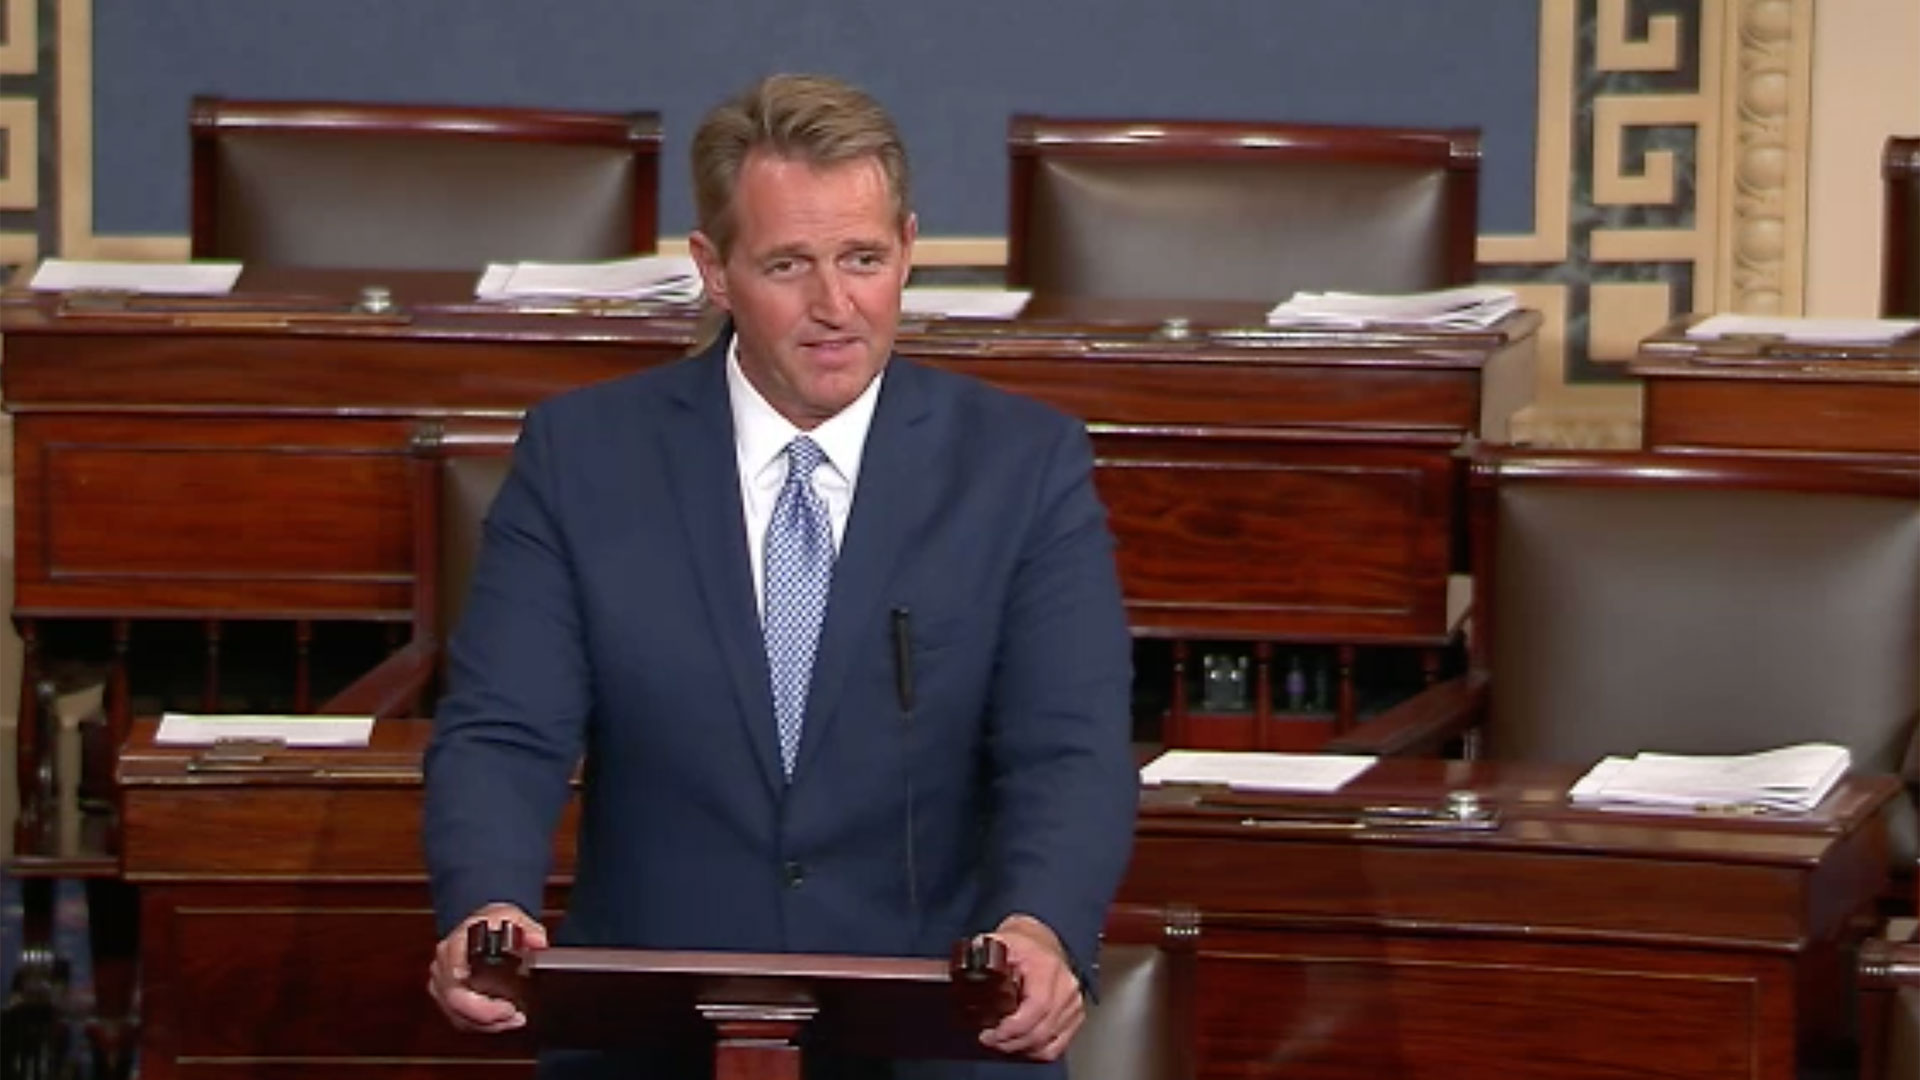 Jeff Flake Announcement hero